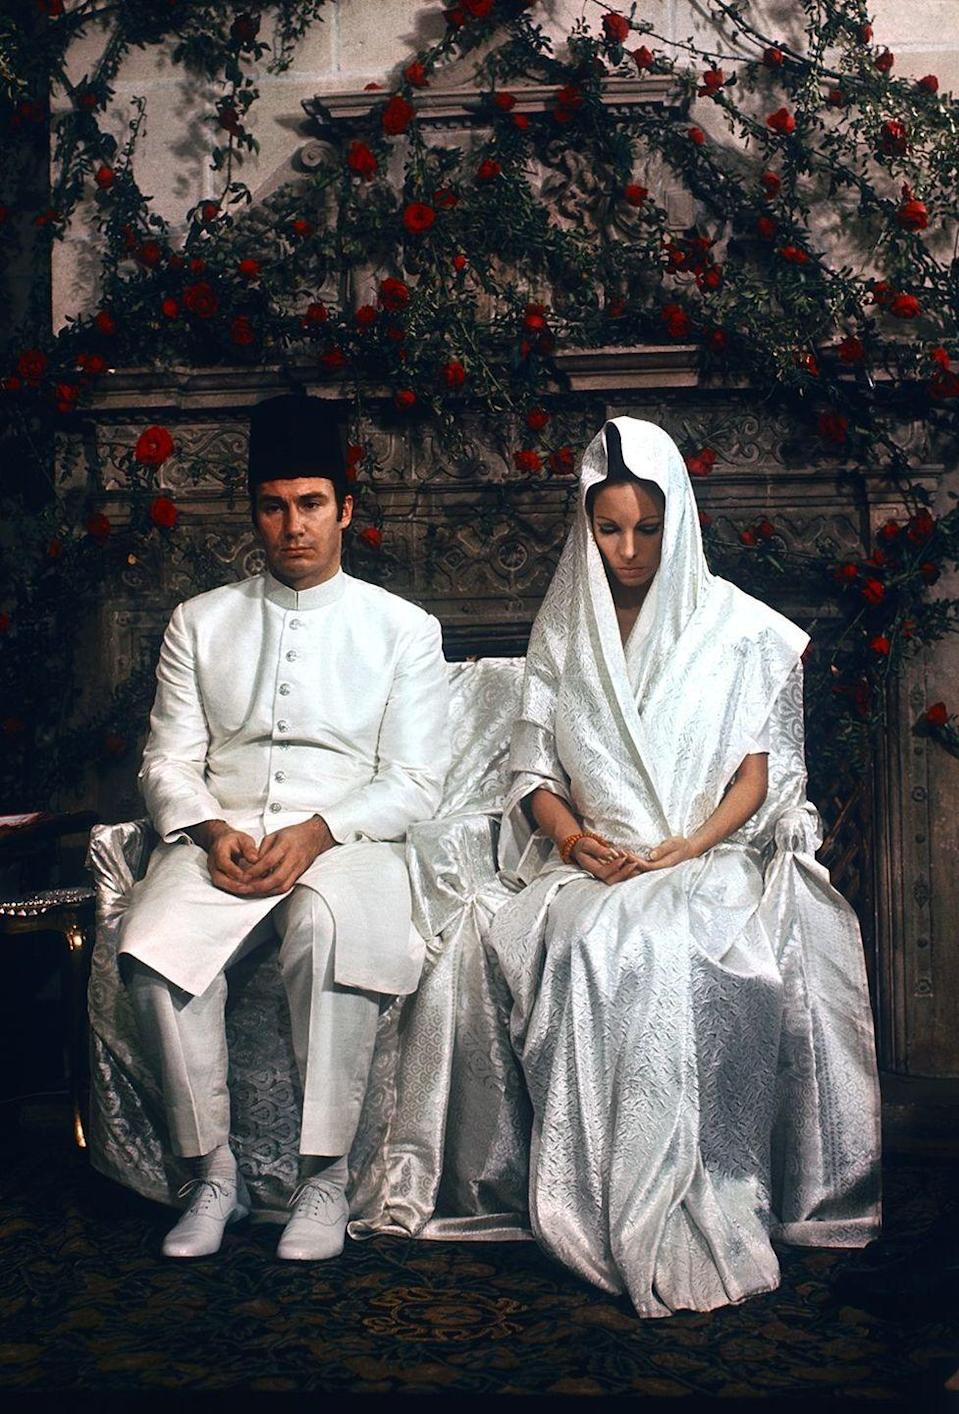 <p>British model Sally Croker-Poole wore an understated-yet-opulent sari in iridescent ivory for her wedding to Prince Shah Karim Al Hussaini, Aga Khan IV, a leader of Ismaili Muslims. </p>